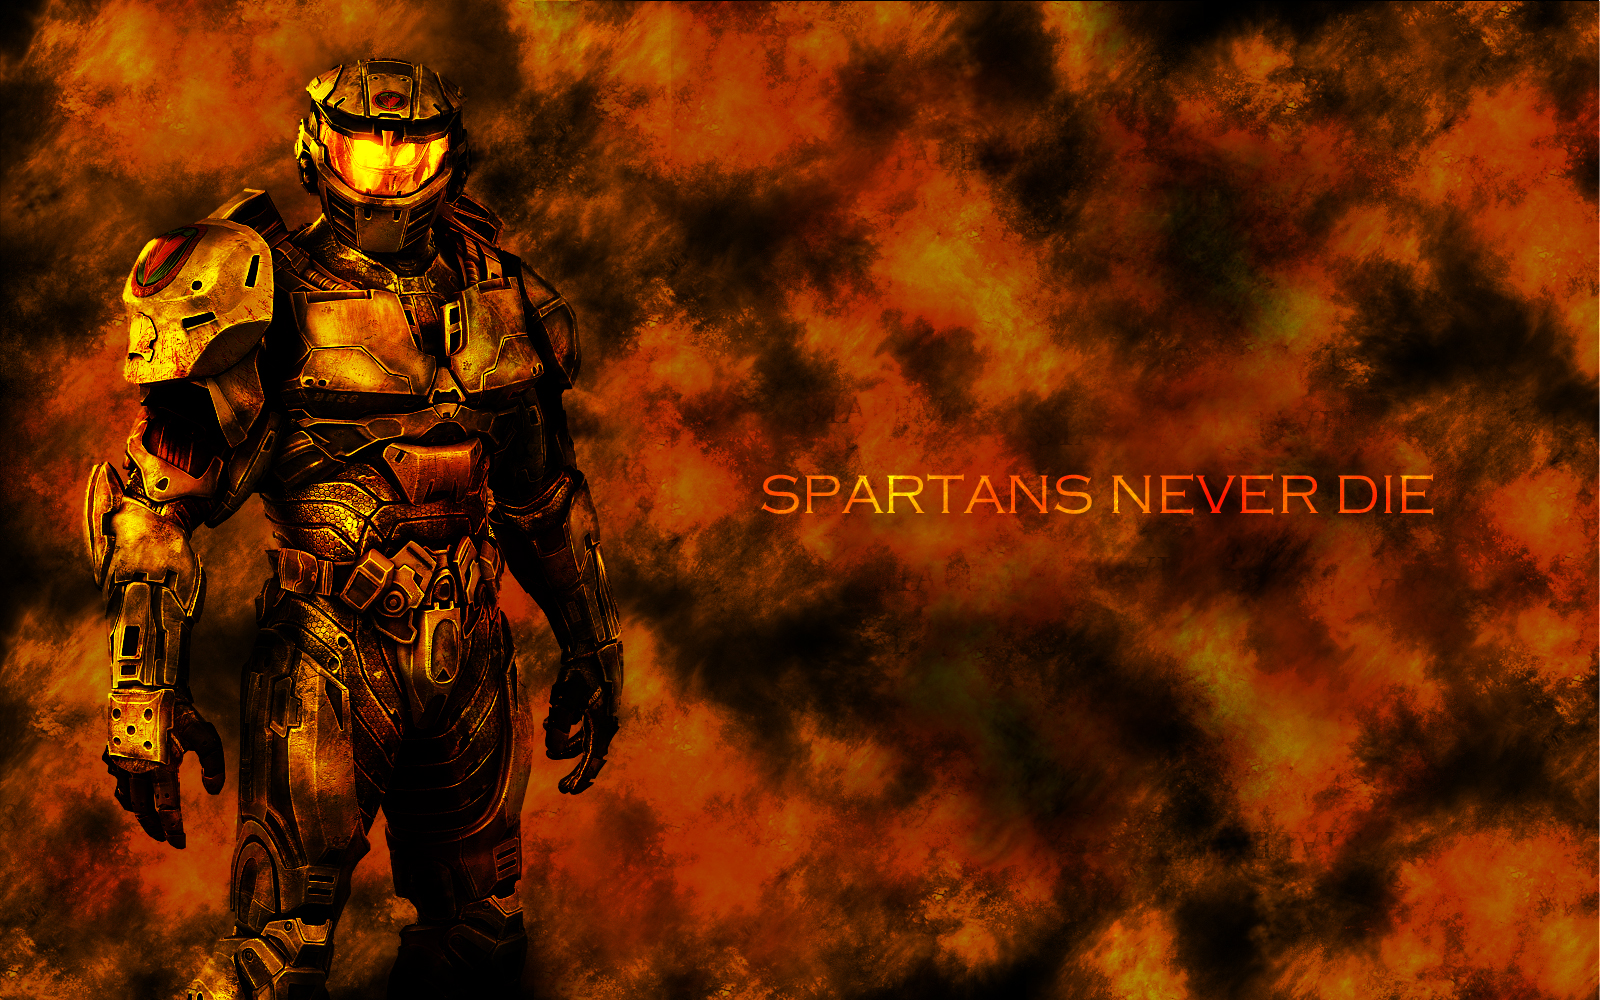 Halo HD Desktop Wallpapers HQ Wallpapers   Wallpapers 1600x1000